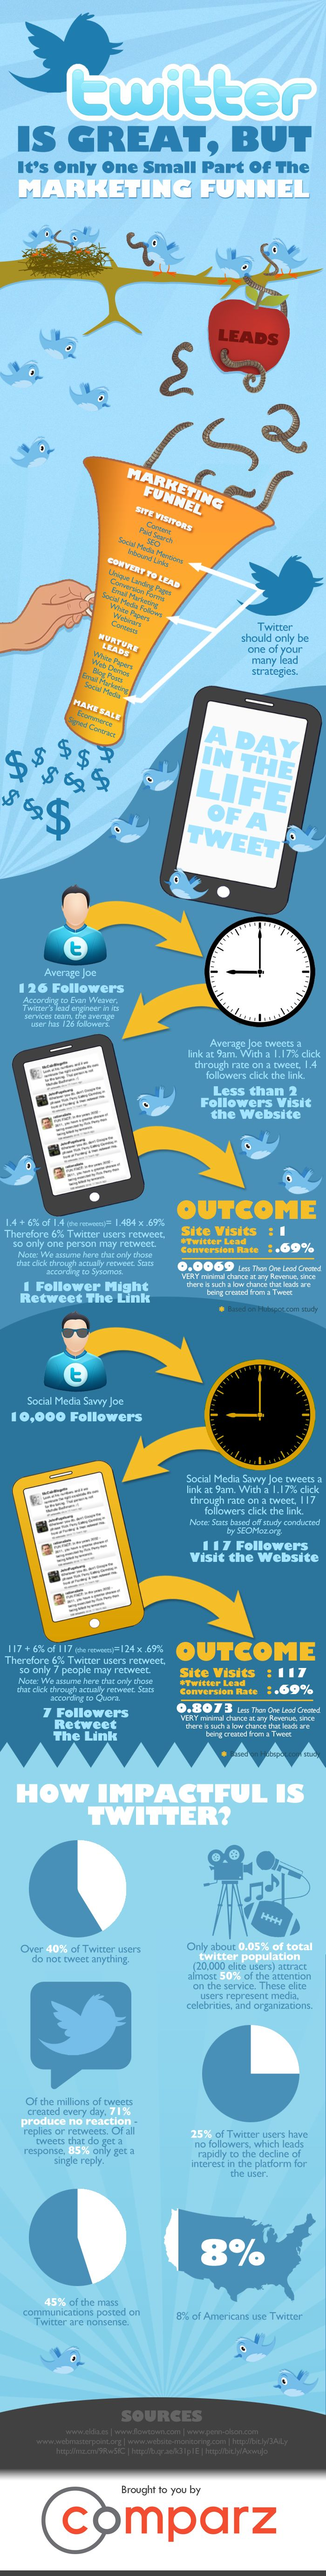 Graphic showing how Twitter is only one small part of the Marketing Funnel.